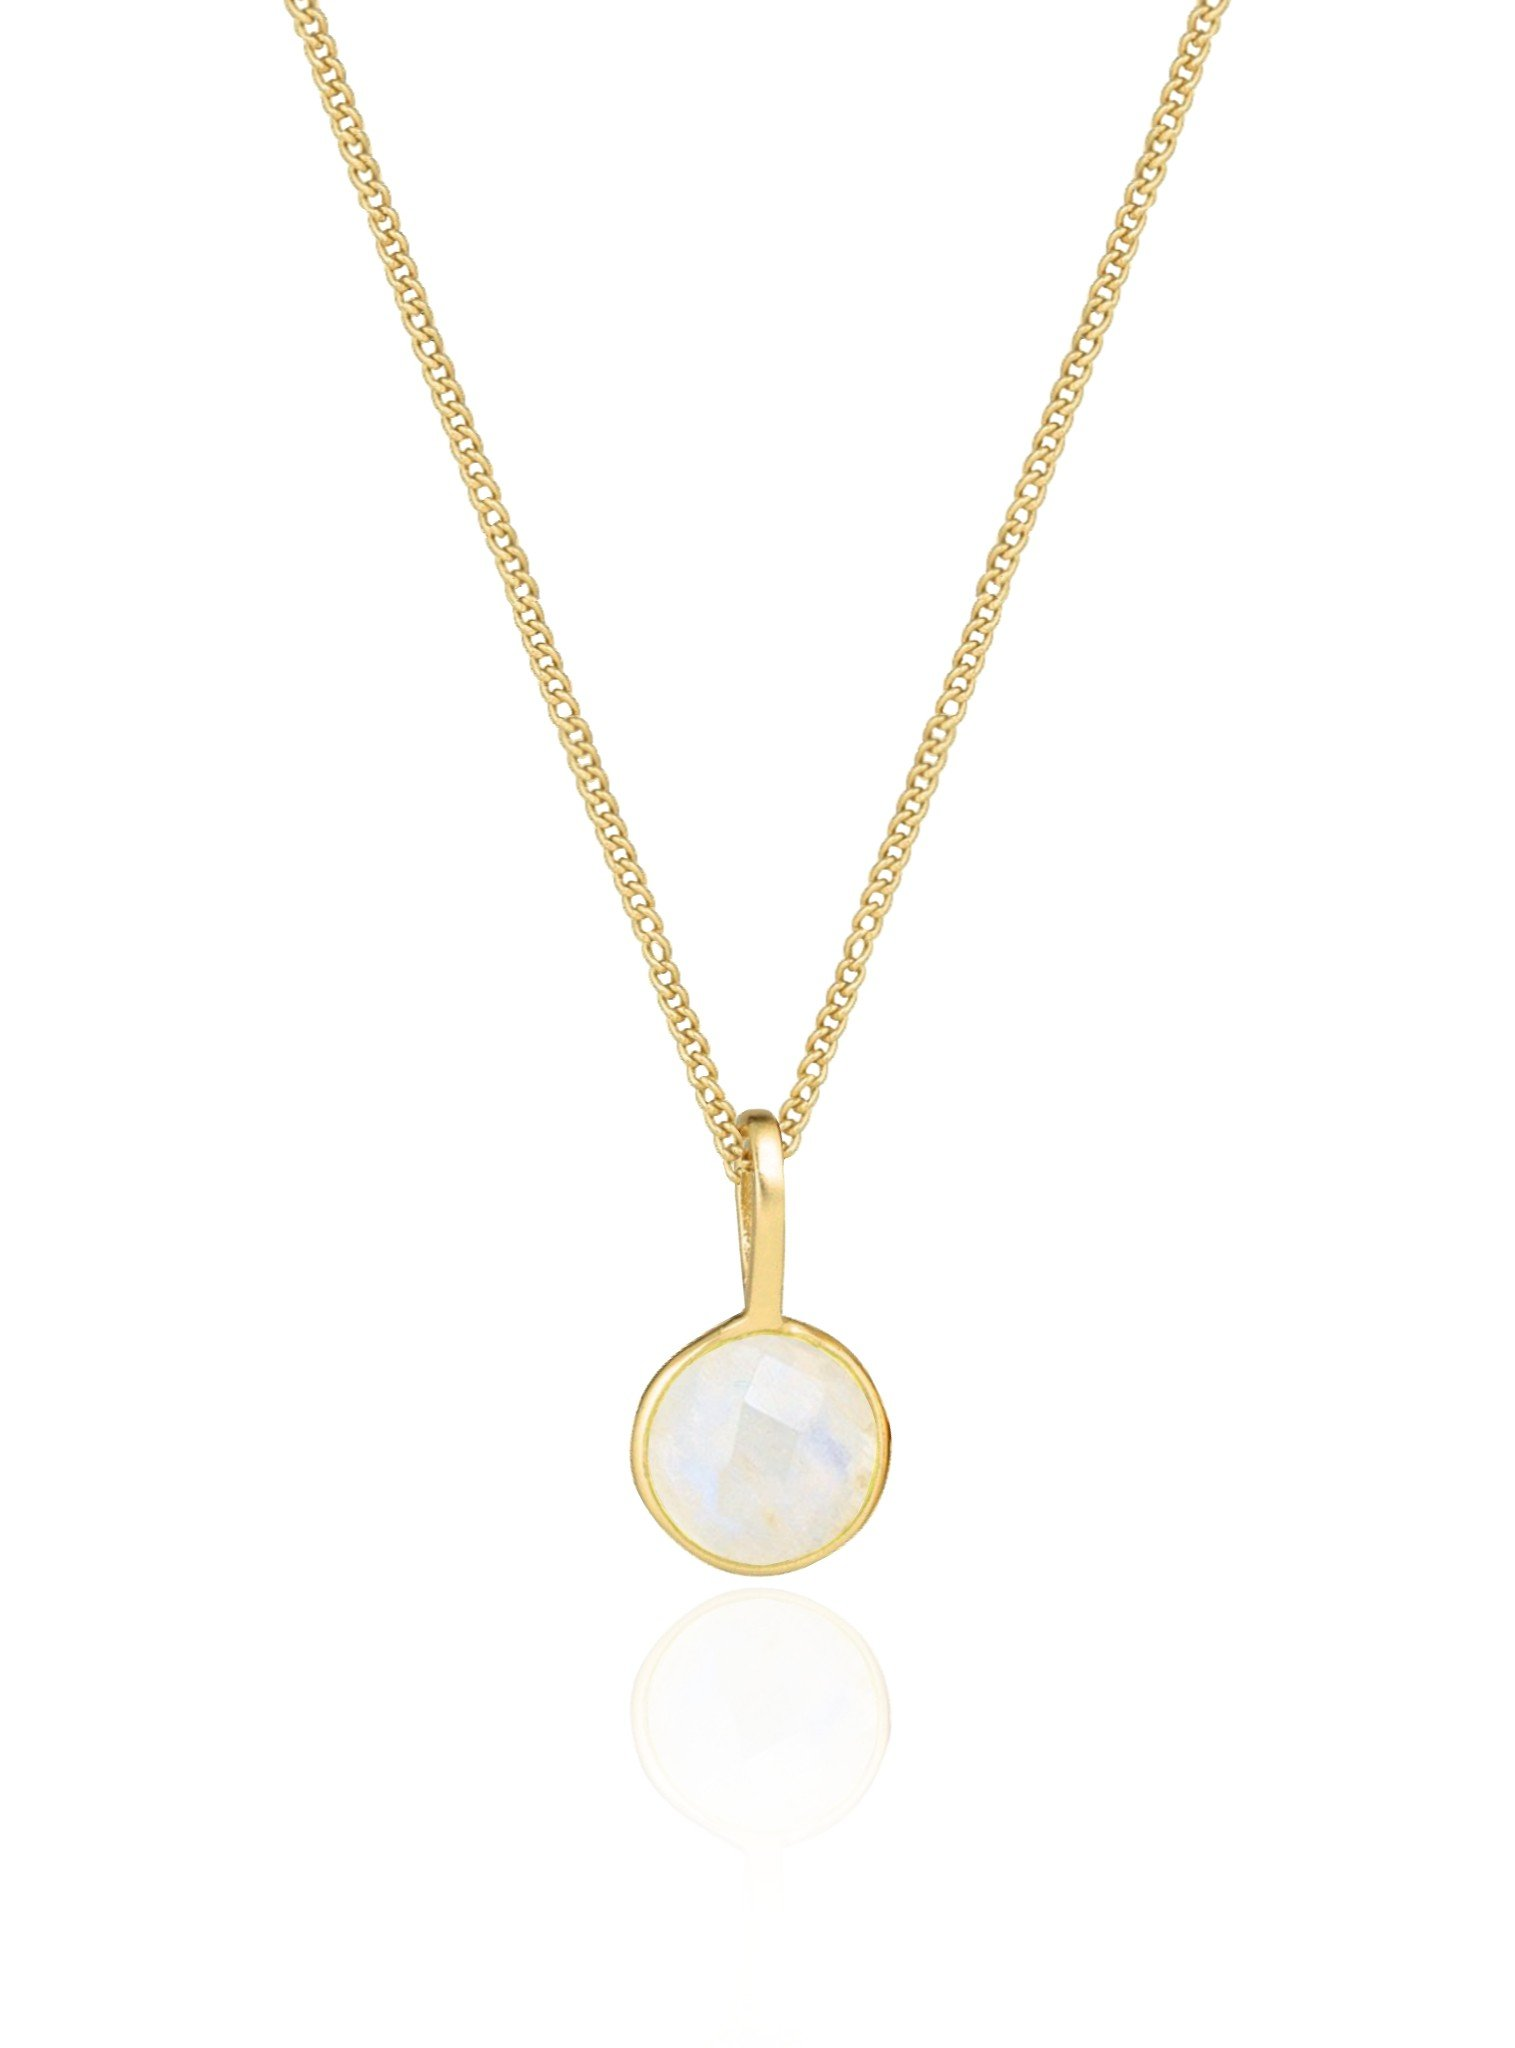 Selene Single Pendant Moonstone Necklace in Gold